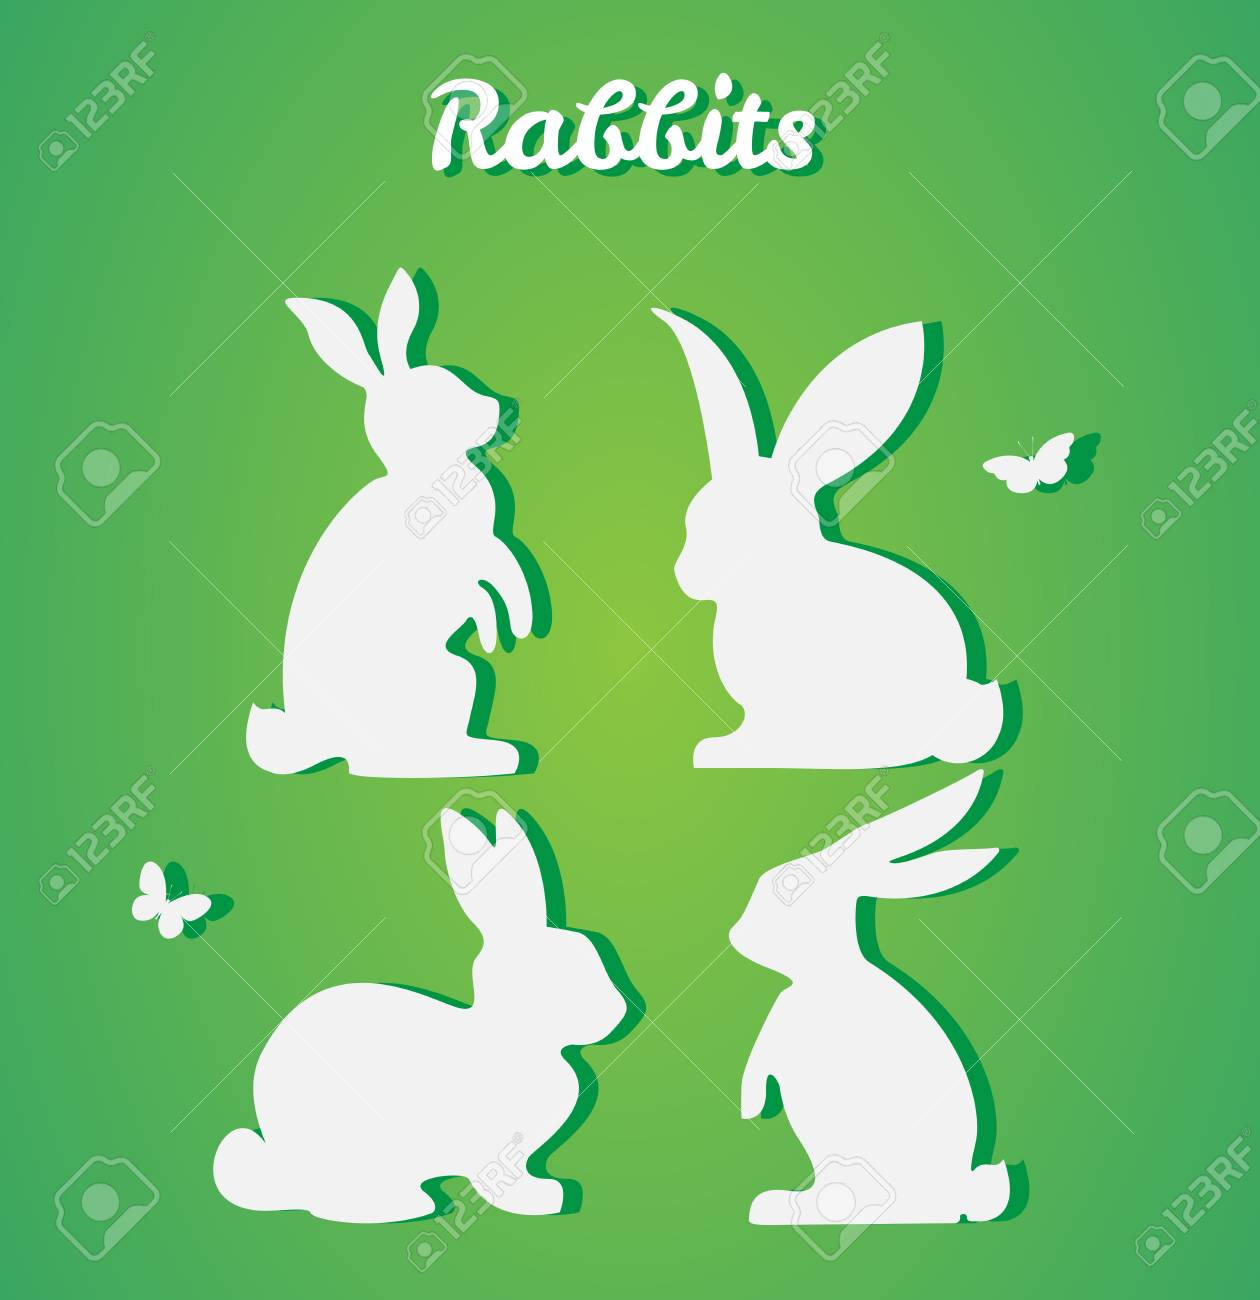 Set Of Easter Rabbits Vector Silhouette Paper Art And Craft Royalty Free Cliparts Vectors And Stock Illustration Image 71384243